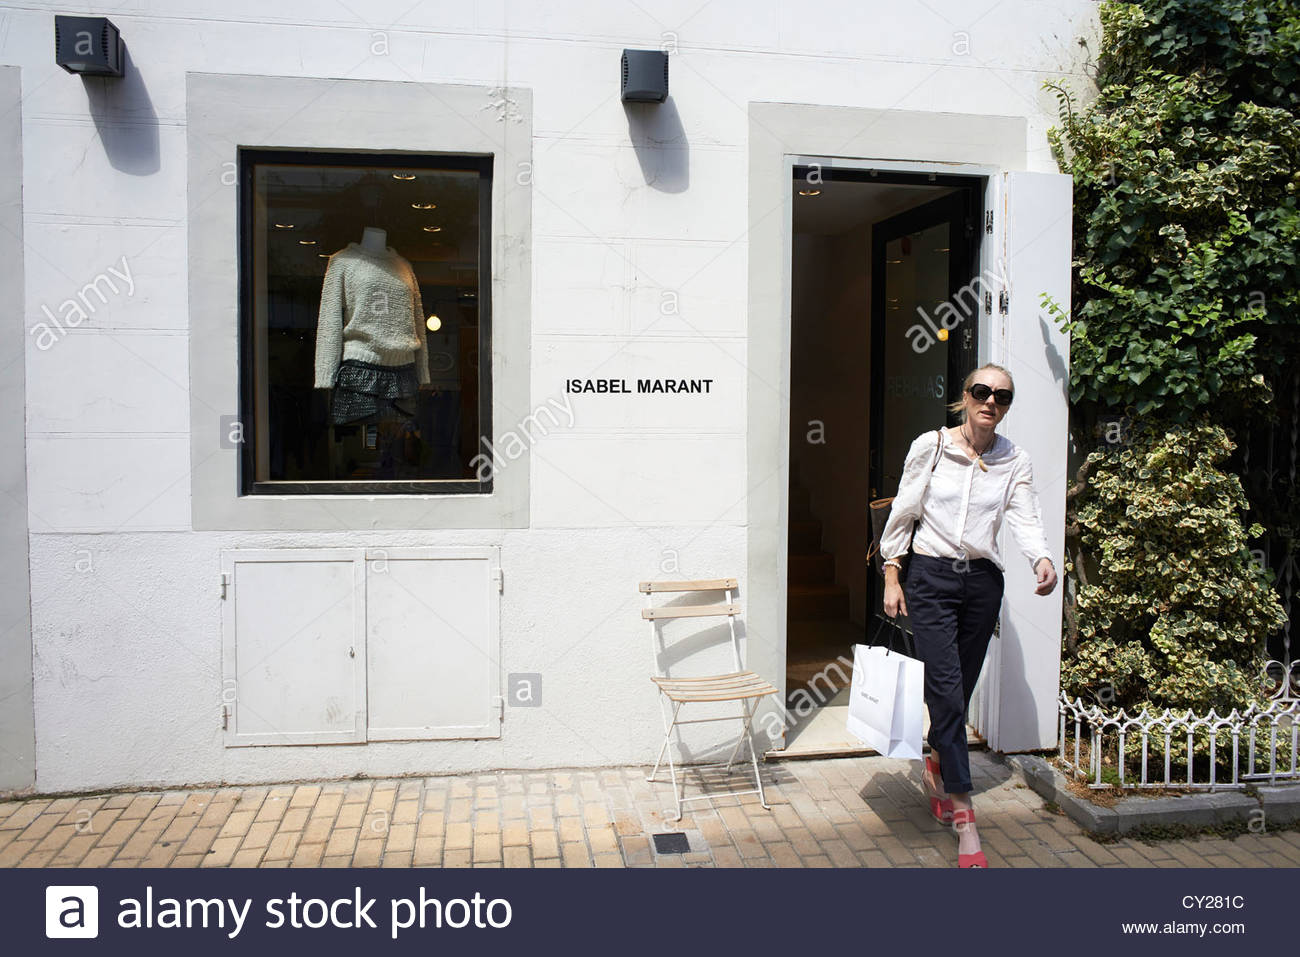 Isabel Marant shop in Serrano shopping area of in Madrid in Spain - Stock Image